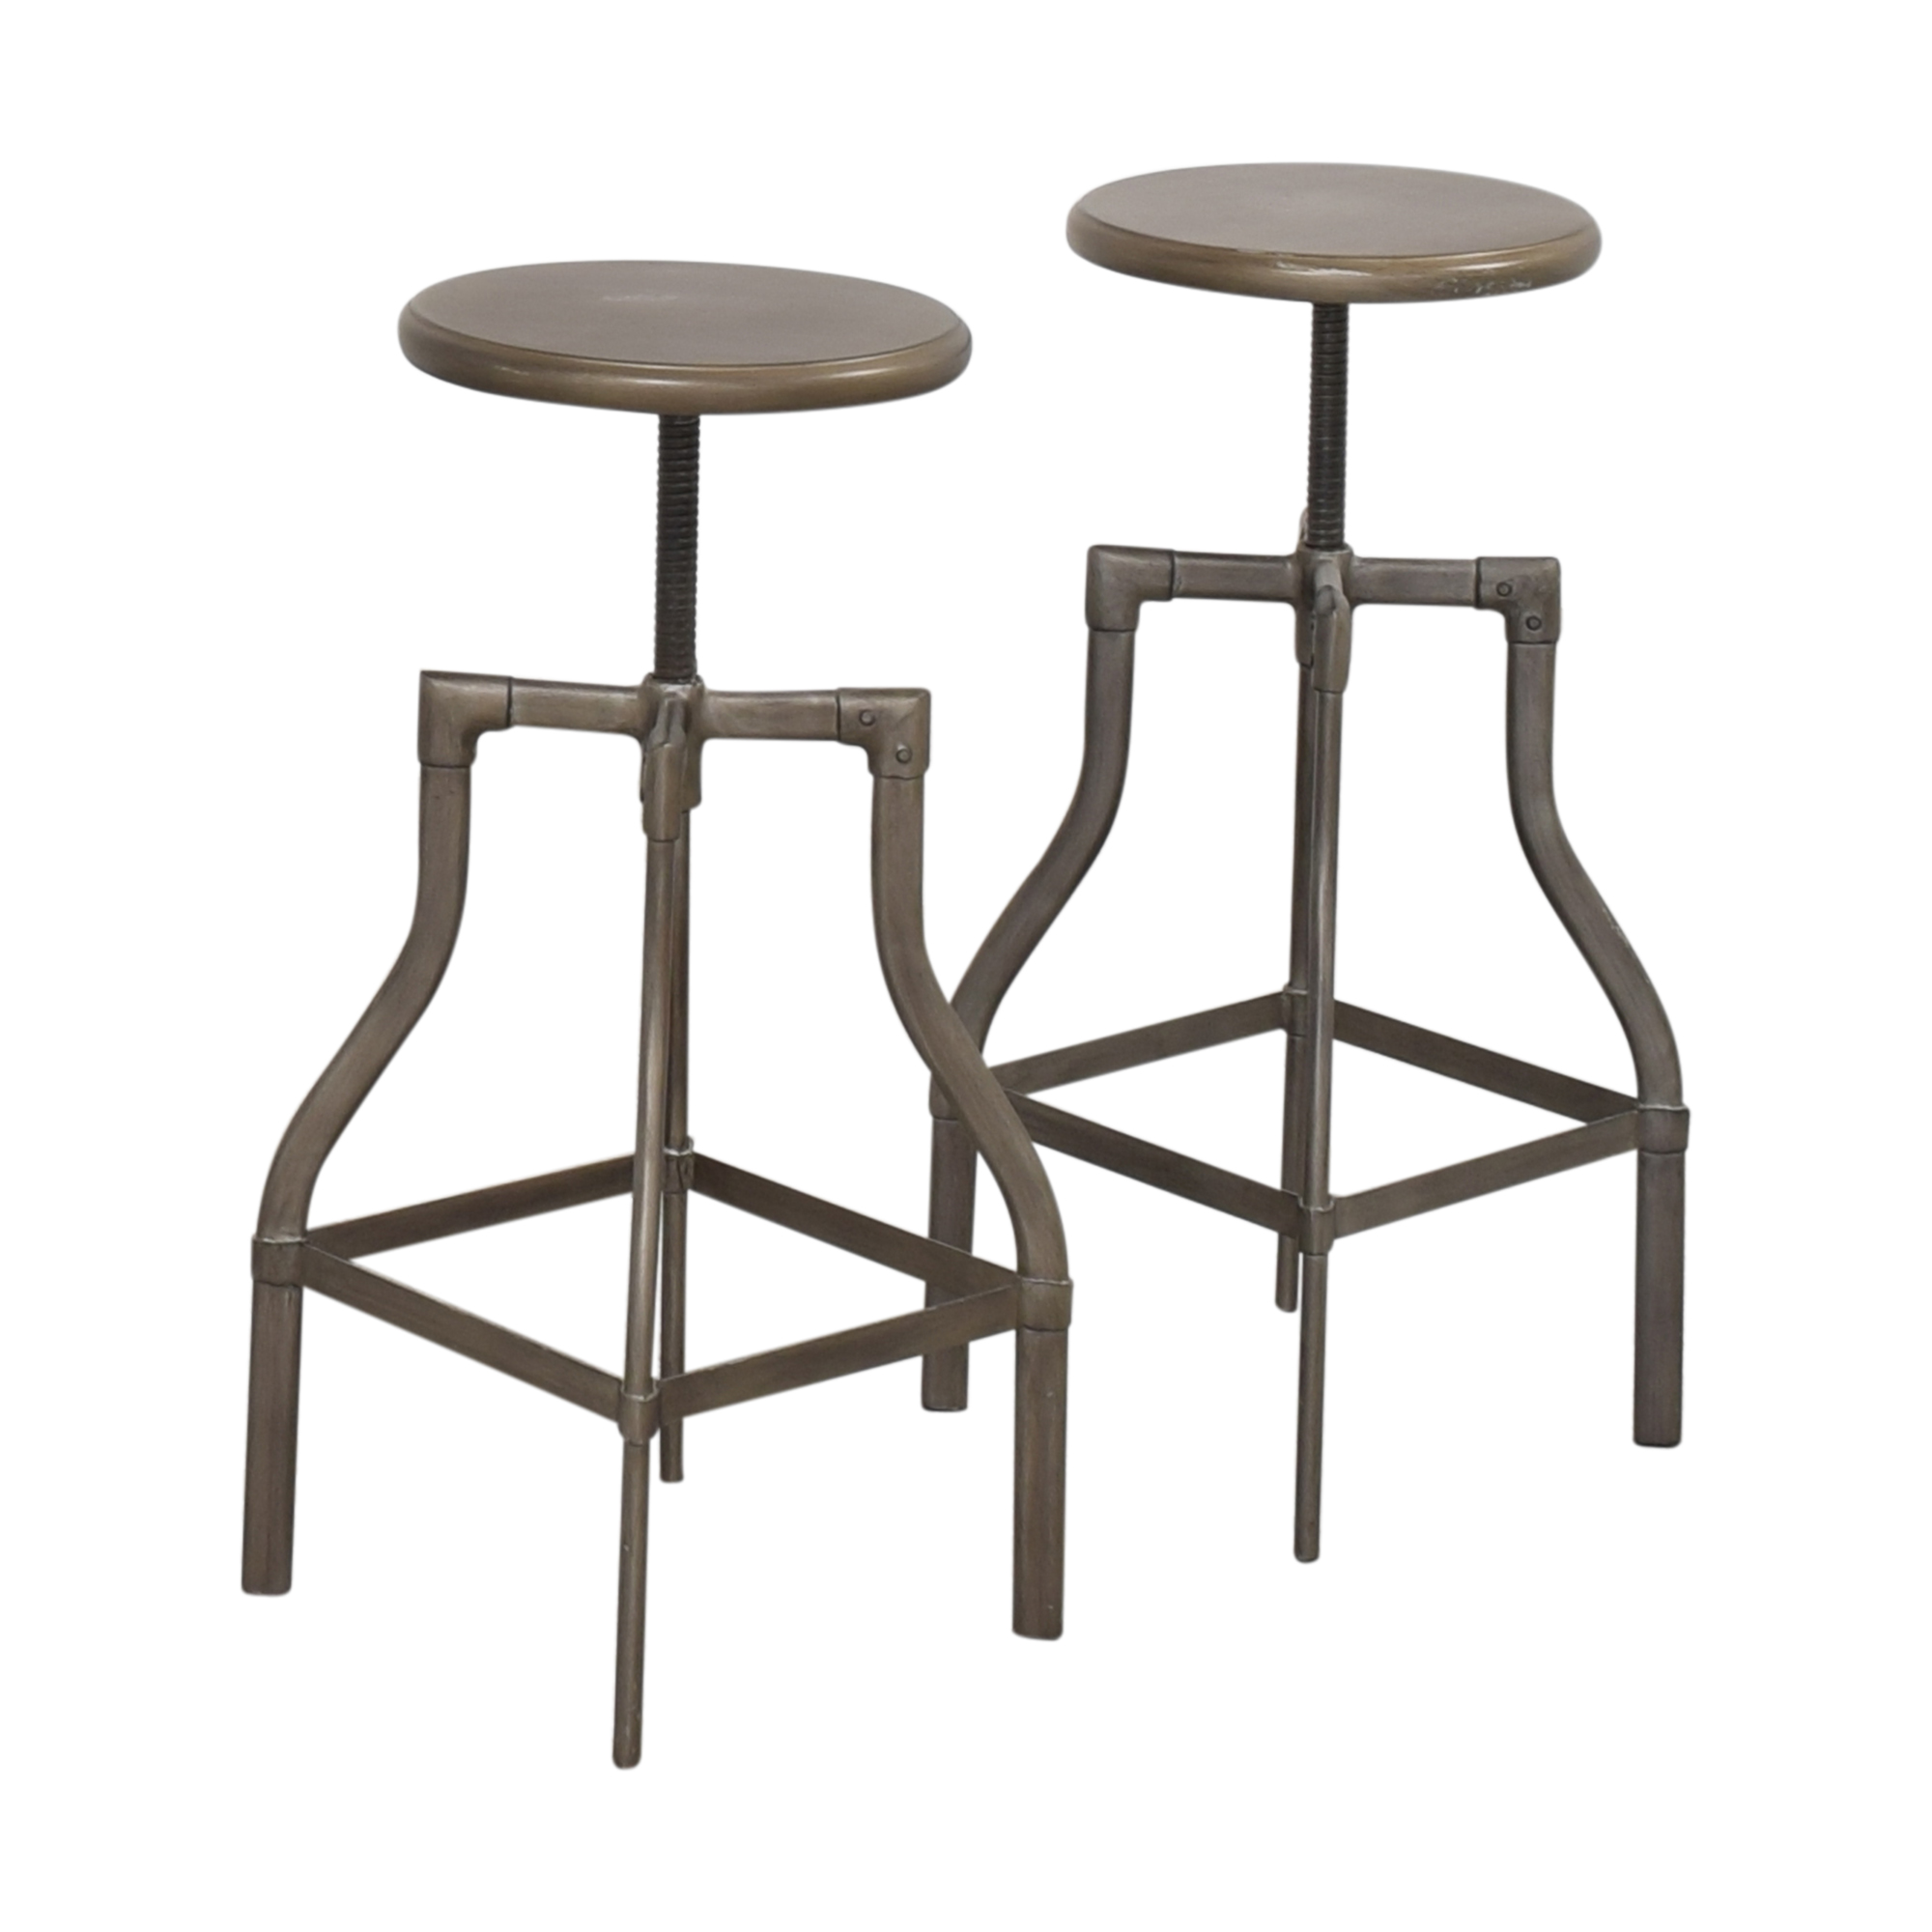 Crate & Barrel Crate & Barrel Turner Adjustable Stools ct